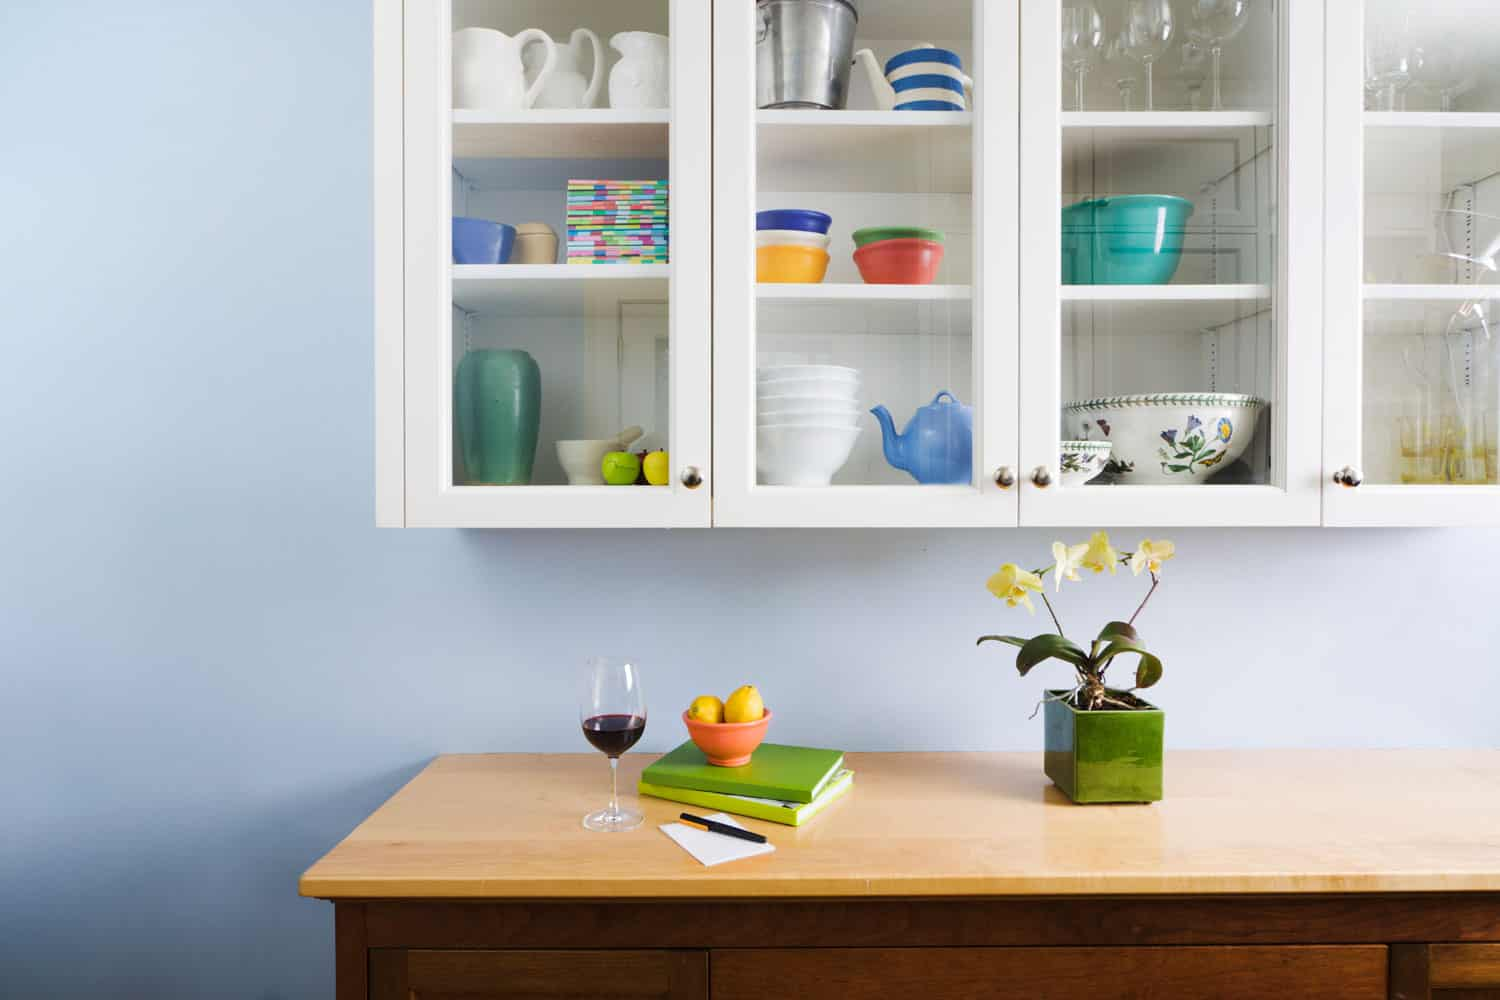 A well-organized kitchen cabinet, counter and cupboard, displaying a glass of wine, books, flowers and housewares in a neat, tidy, freshly painted home interior.